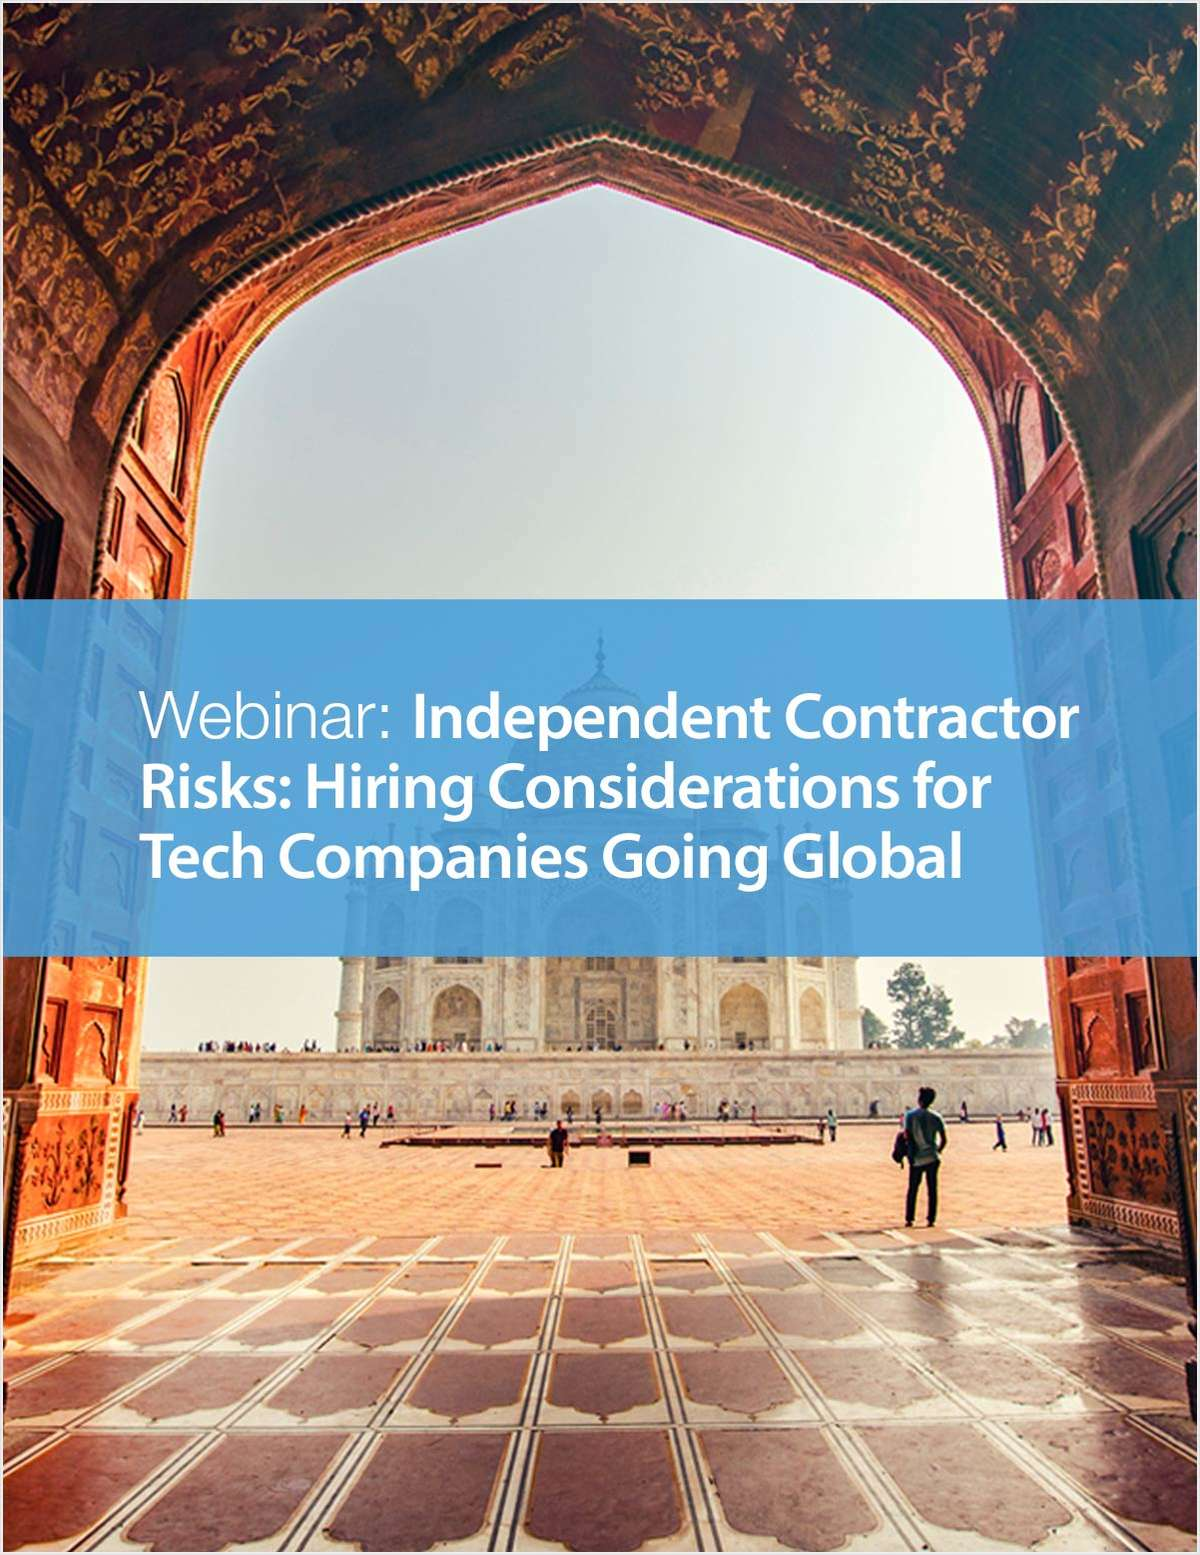 Webinar: Independent Contractor Risks: Hiring Considerations for Tech Companies Going Global